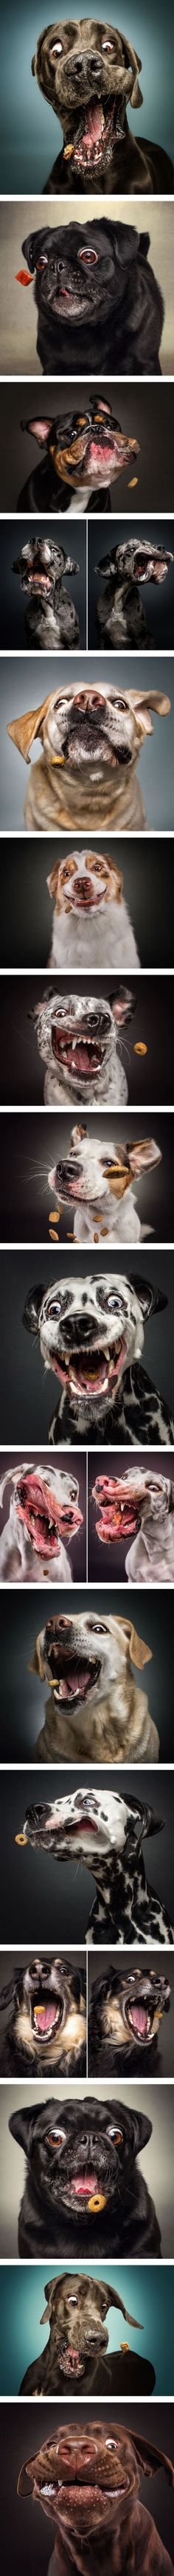 Expressions of Dogs Catching Treats In Mid-Air (By Christian Vieler-Kircher)